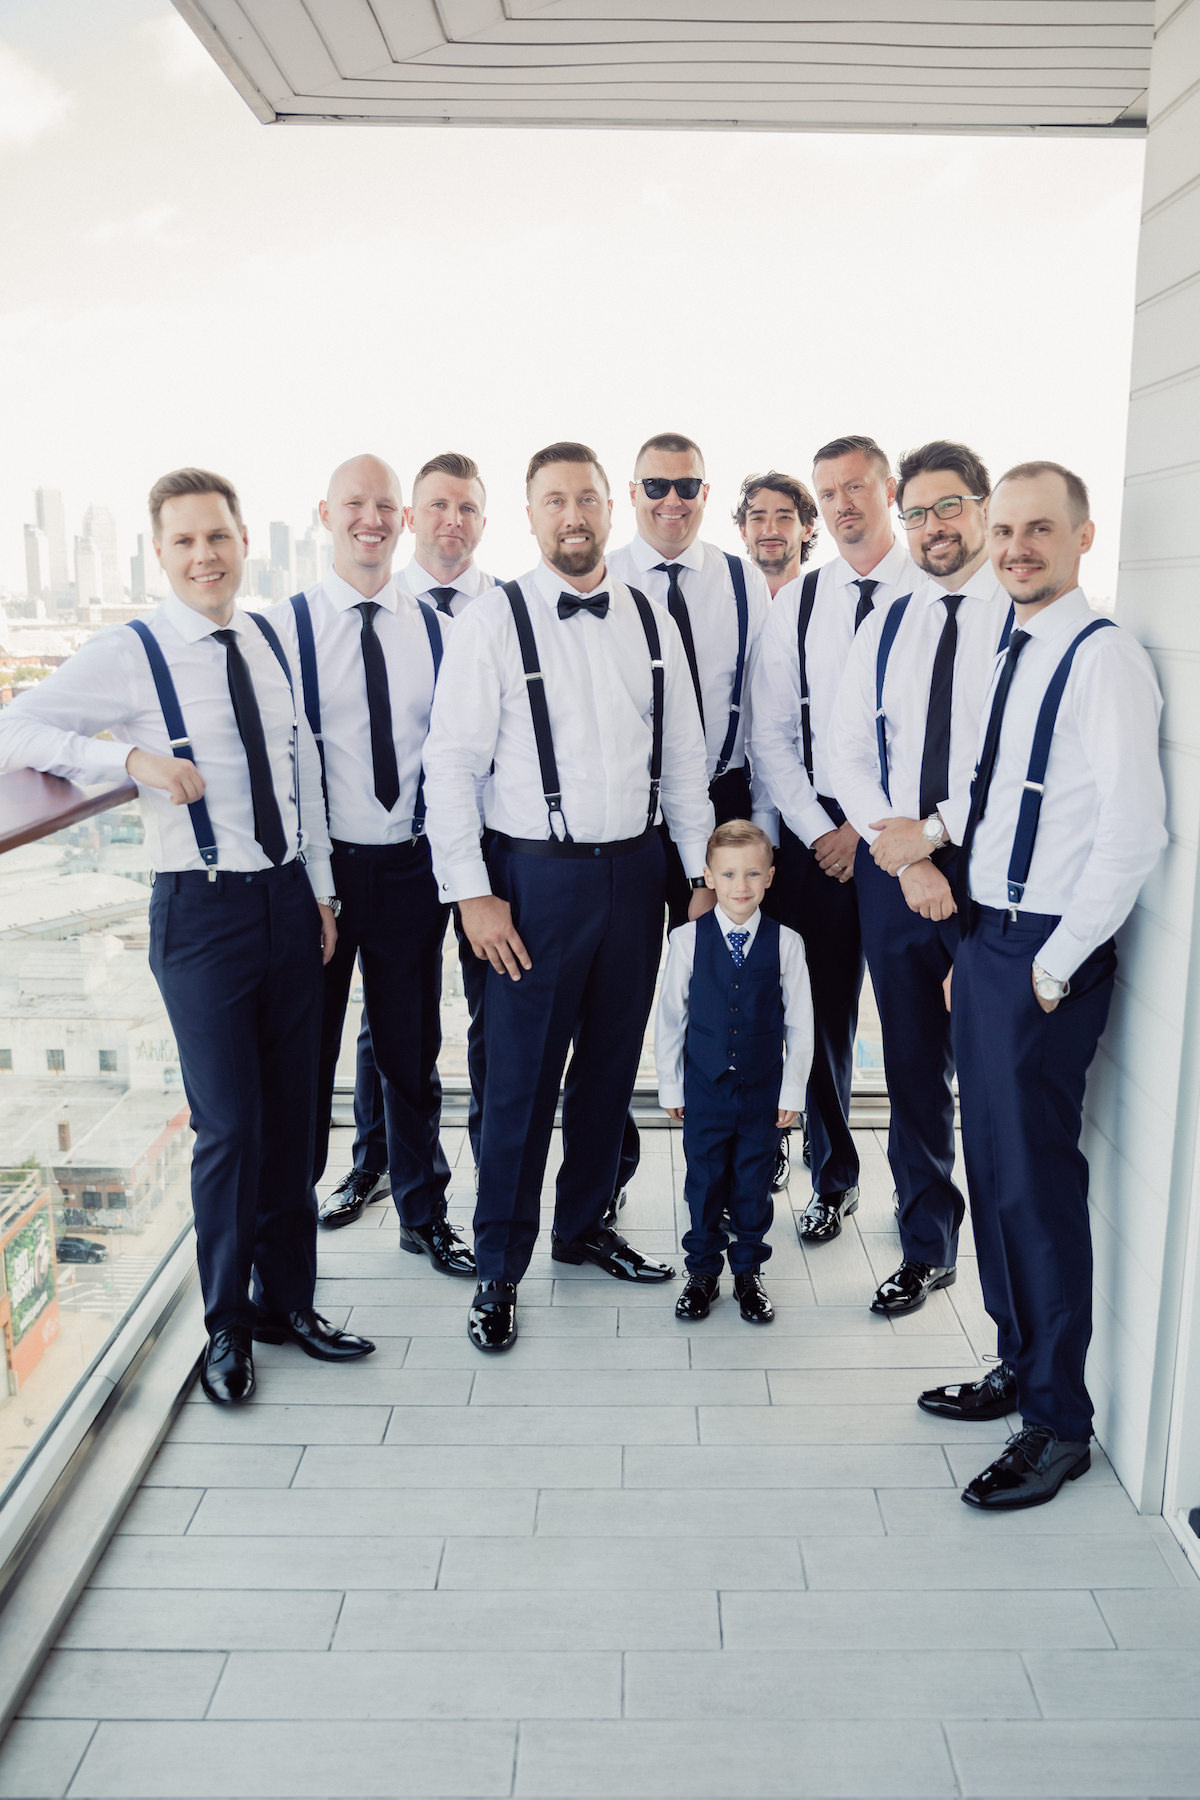 Groomsmen style - Photography: Charming Images